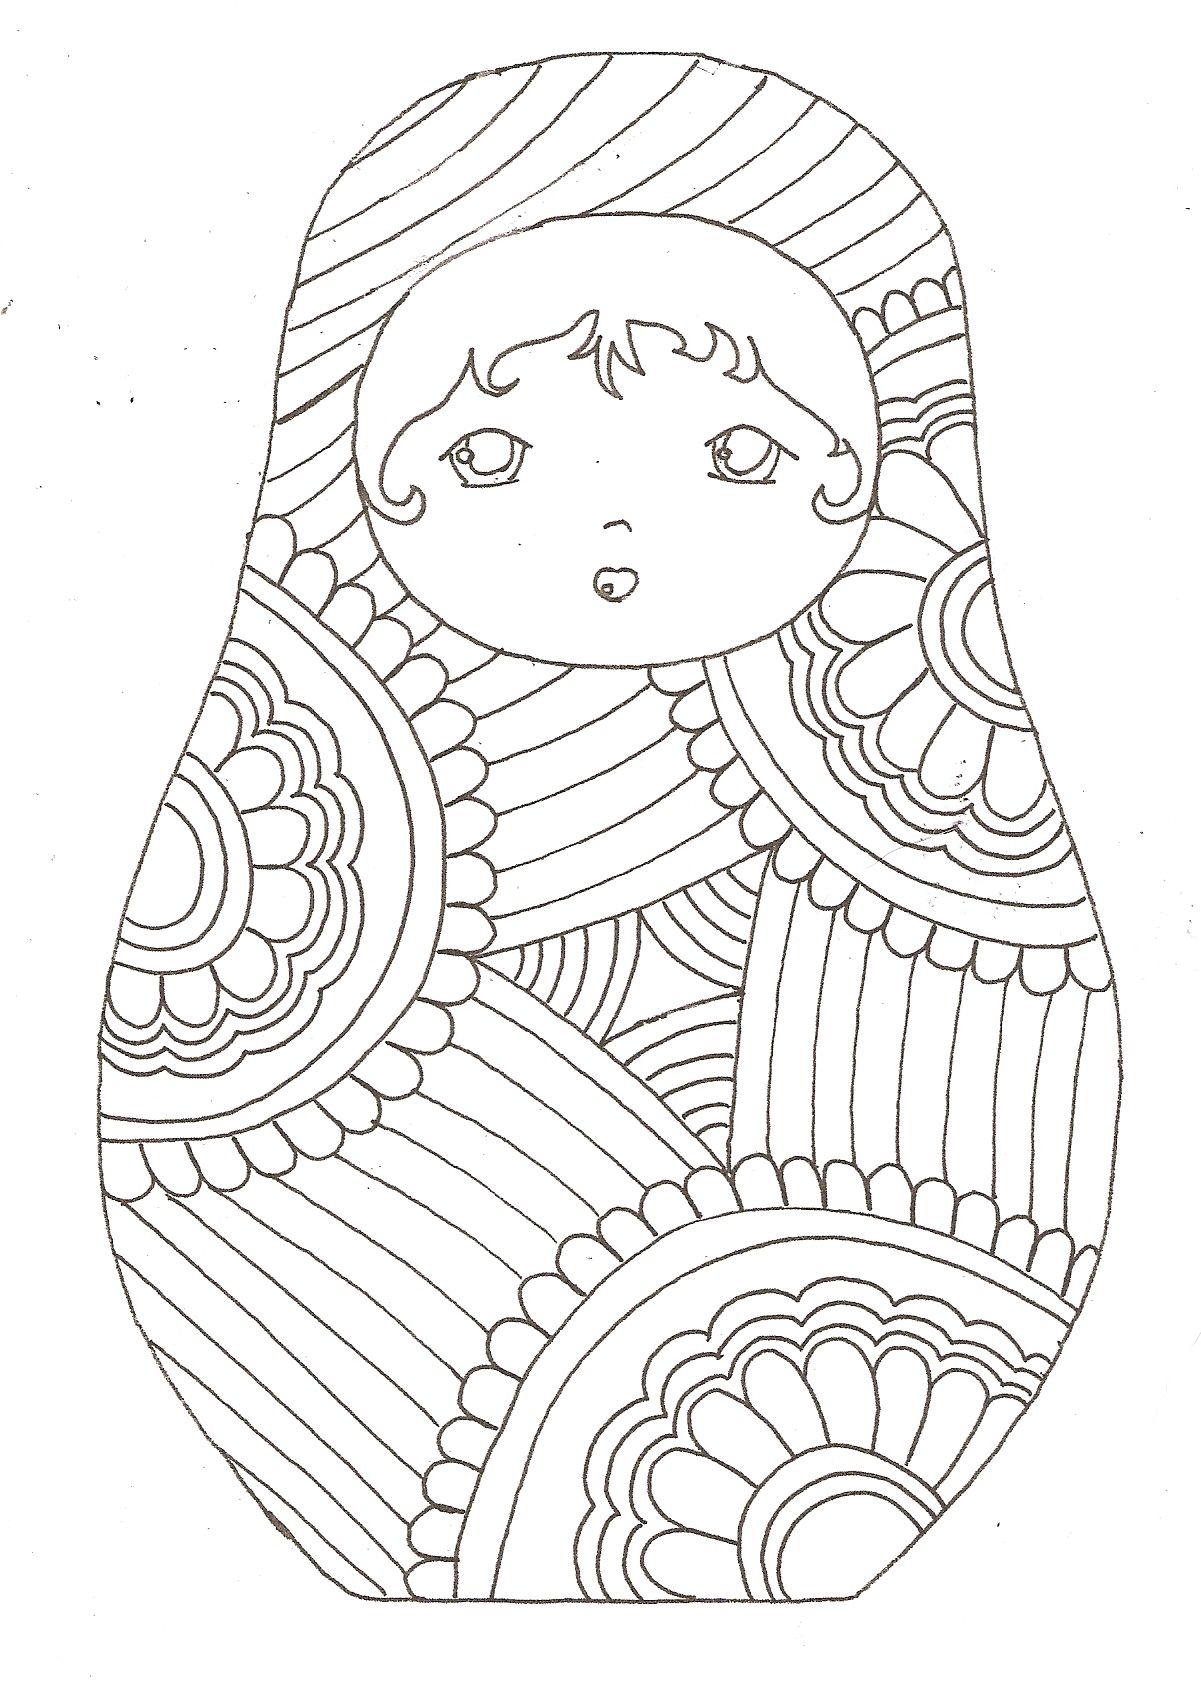 paper doll coloring sheets alltoys for